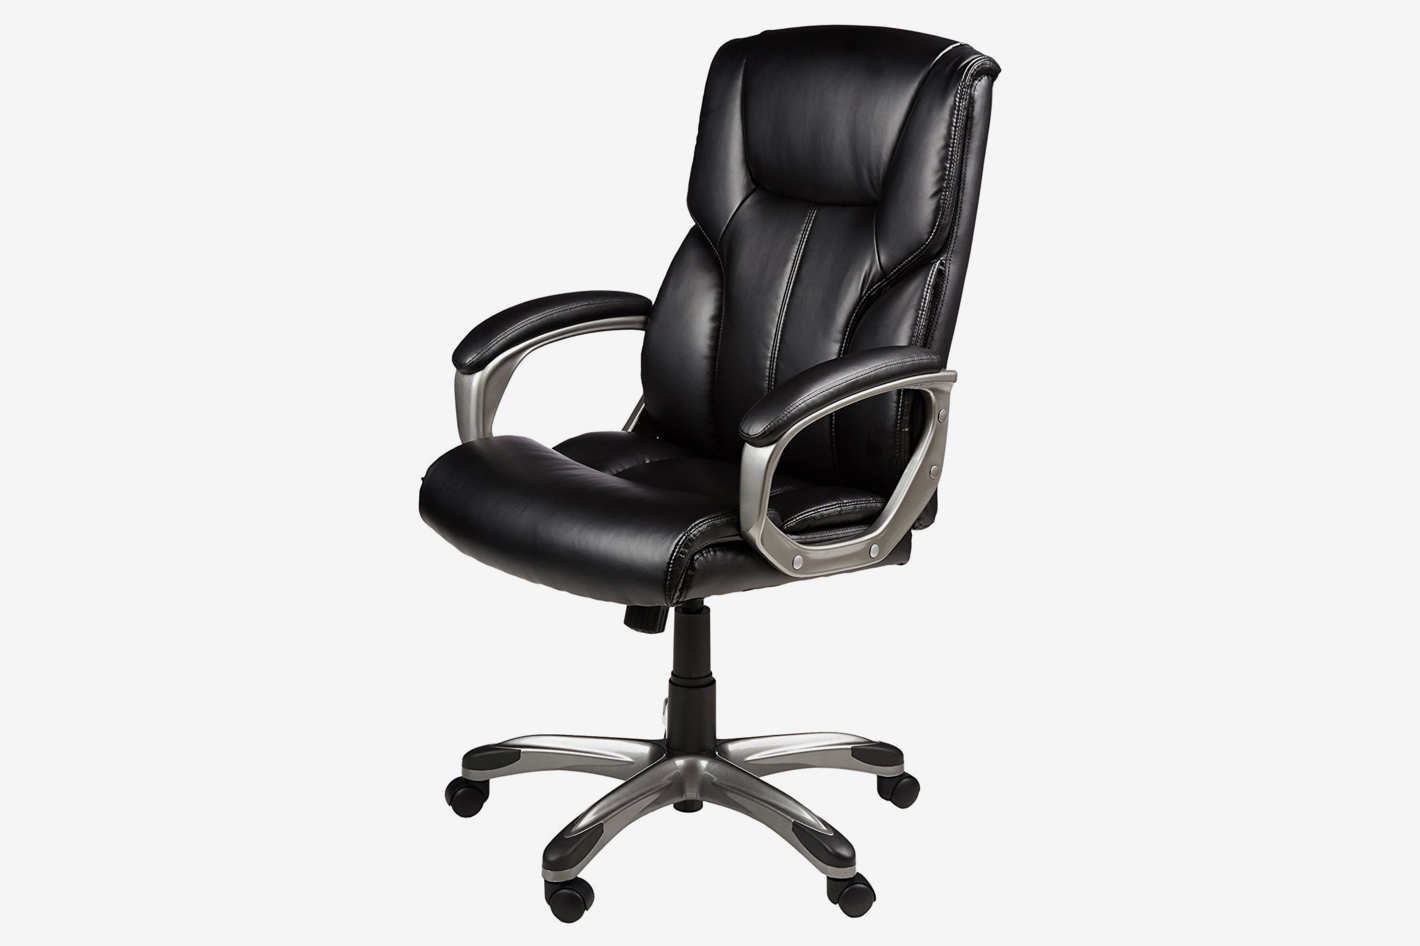 cheap office chairs amazon. Amazonbasics Executive Office Chair Black Leather Cheap Chairs Amazon A